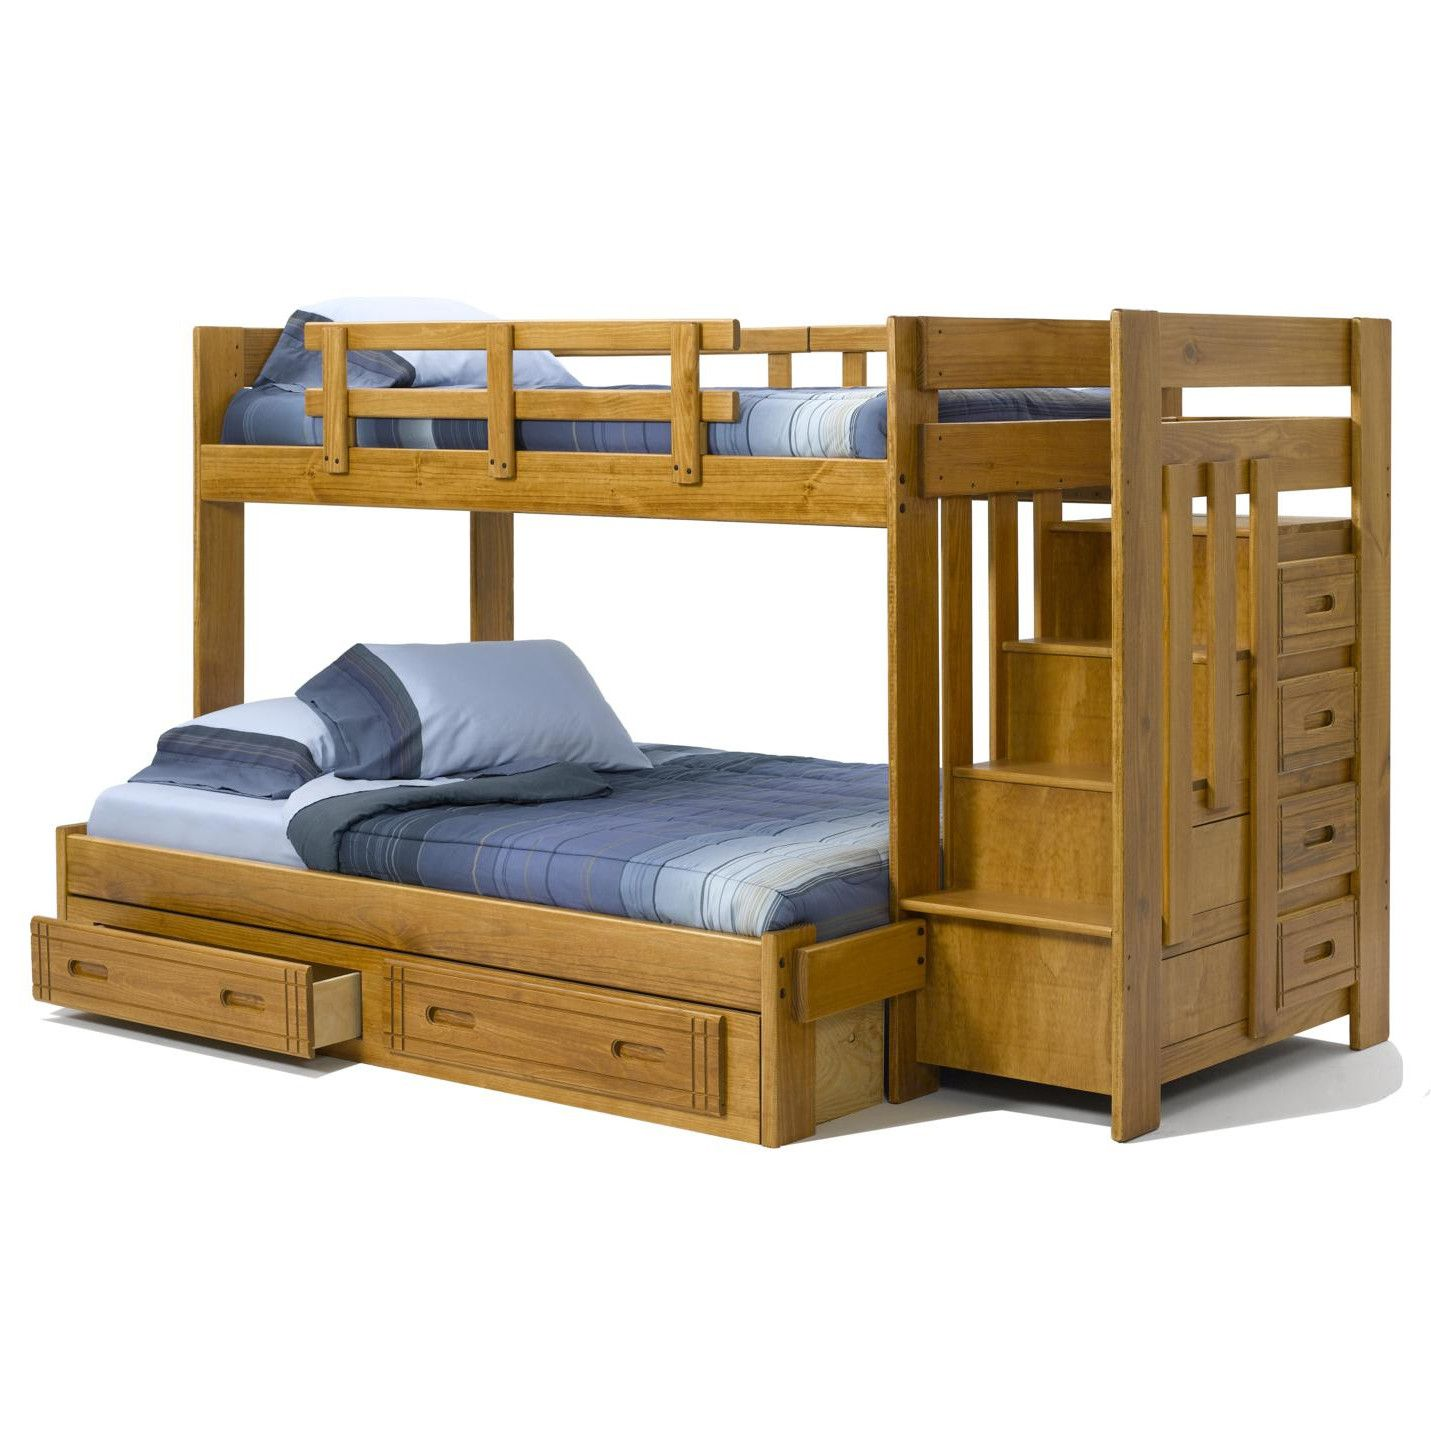 Diy woodworking twin bed my little lady is maturing too quickly it s time for her